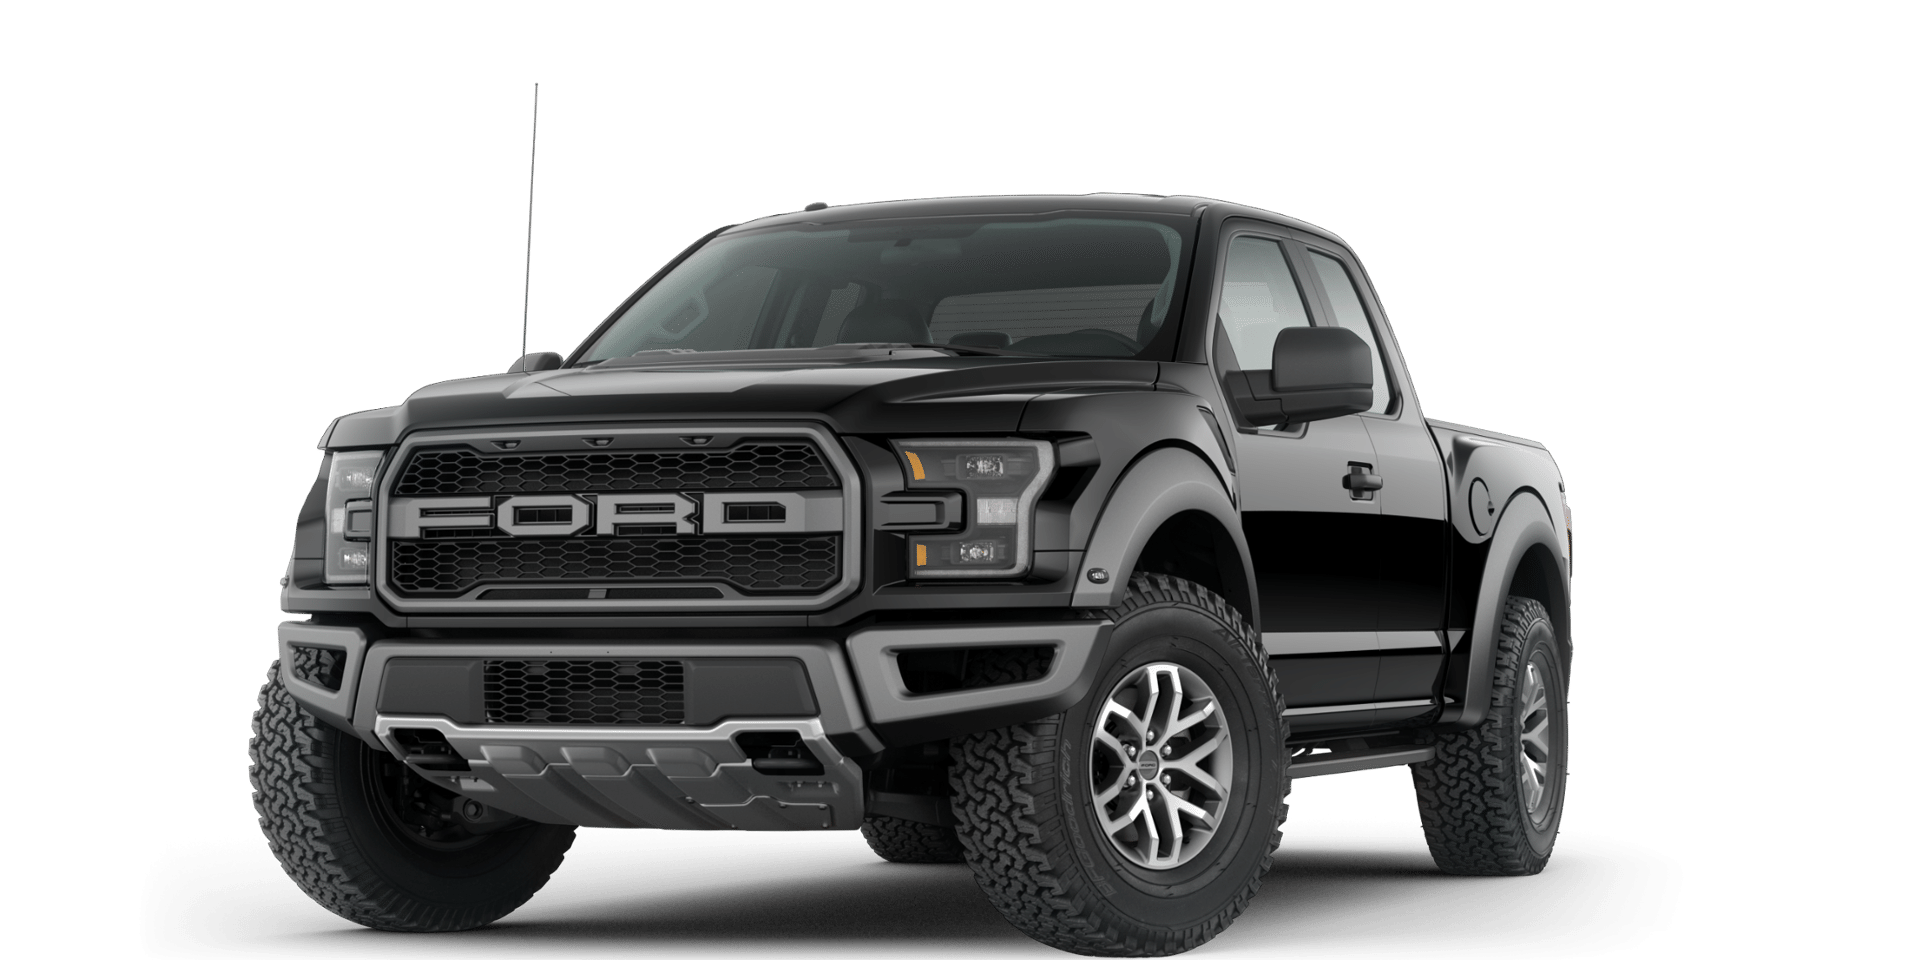 12 Best Tough And Beast Ford F 150 Cars Of All Times Ford Raptor Ford F150 Ford Trucks